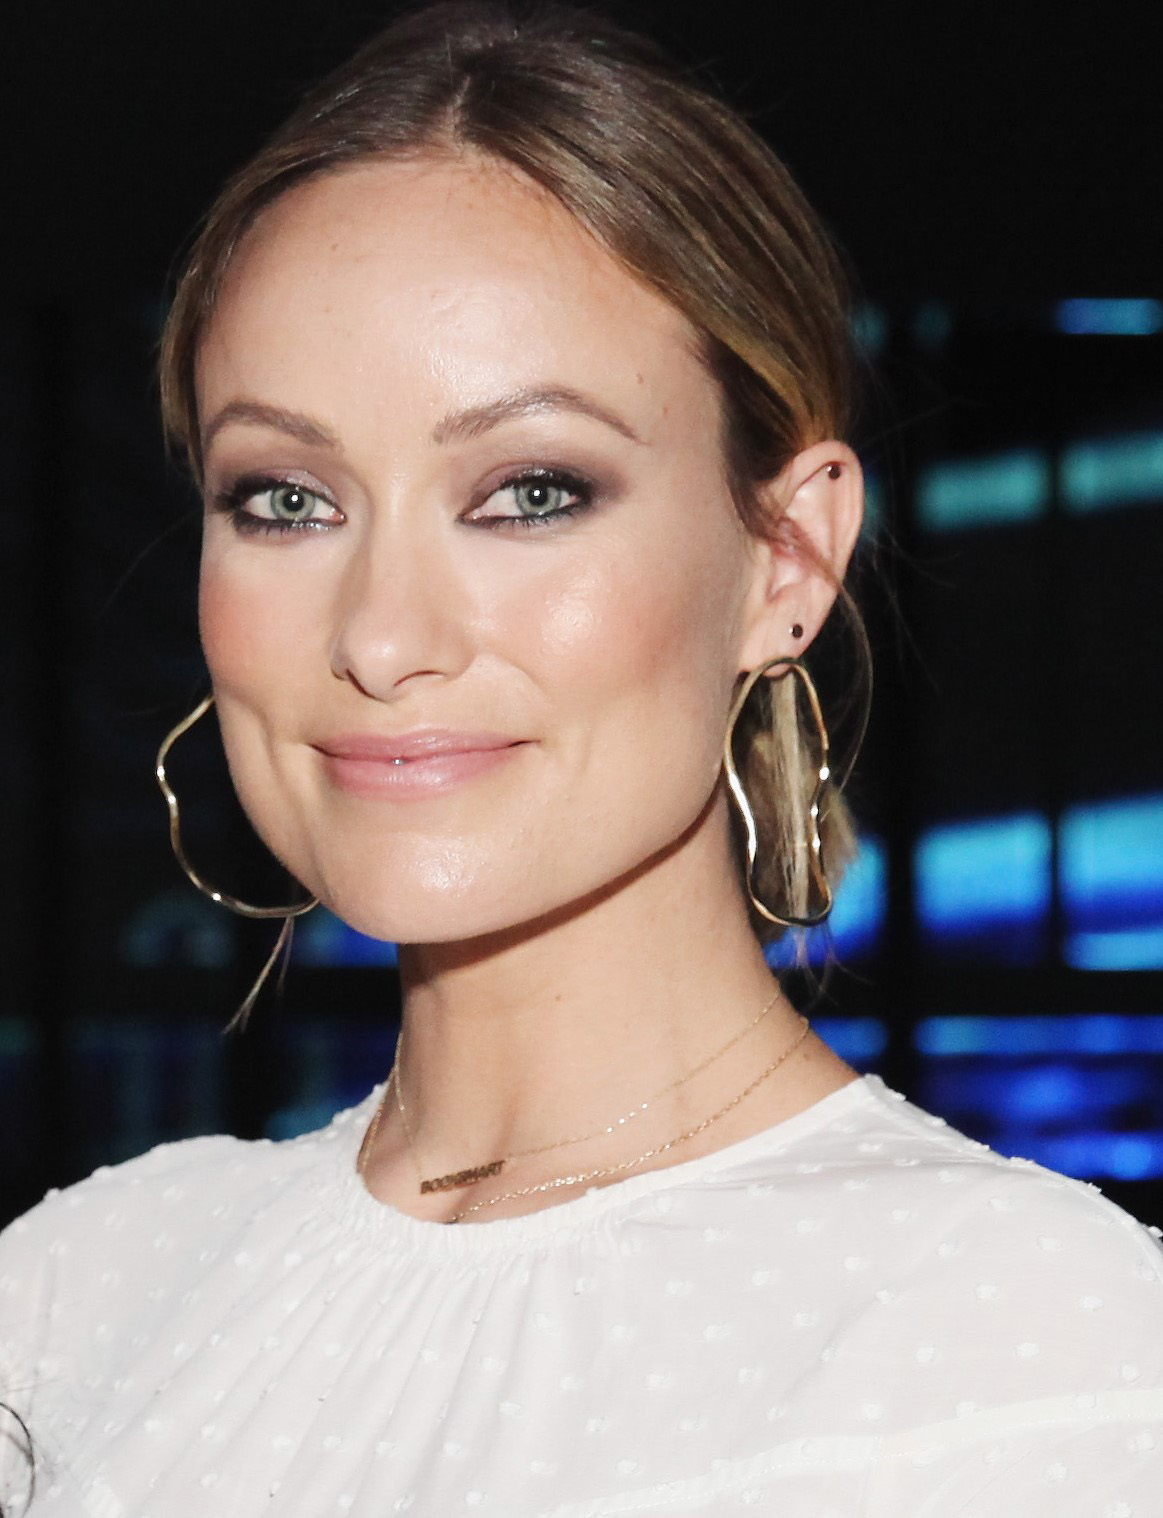 Dunkin' Donuts® Coffee at Home partnered with coffee aficionado, actress, director & interior design enthusiast, Olivia Wilde, to incorporate her personal style into the tiny home. Photo Credit: Kelly Sullivan/Getty Images